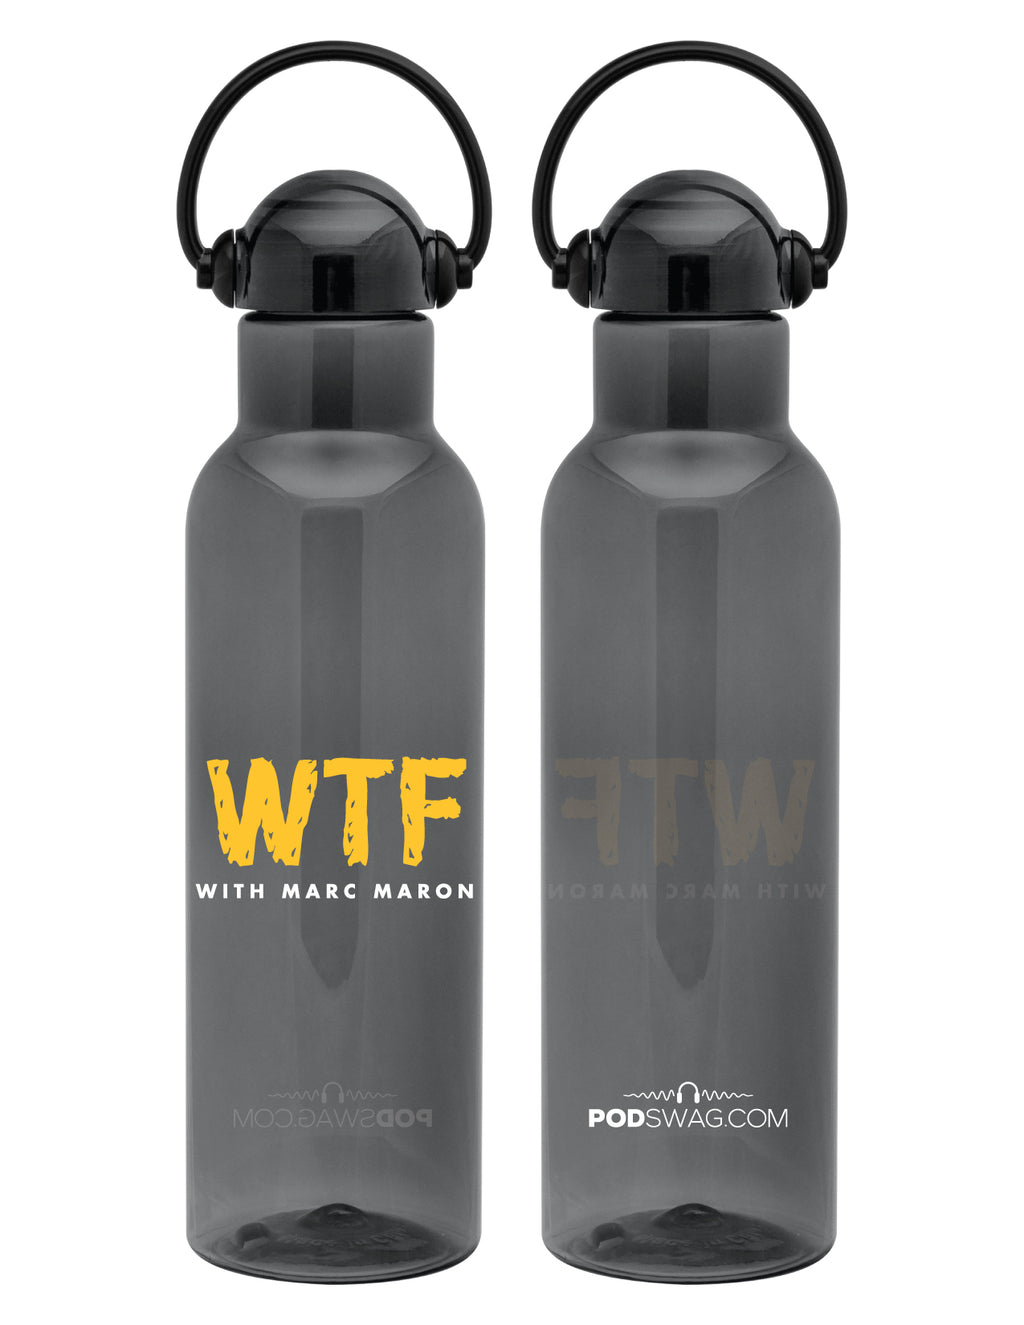 WTF: Headphones Bottle